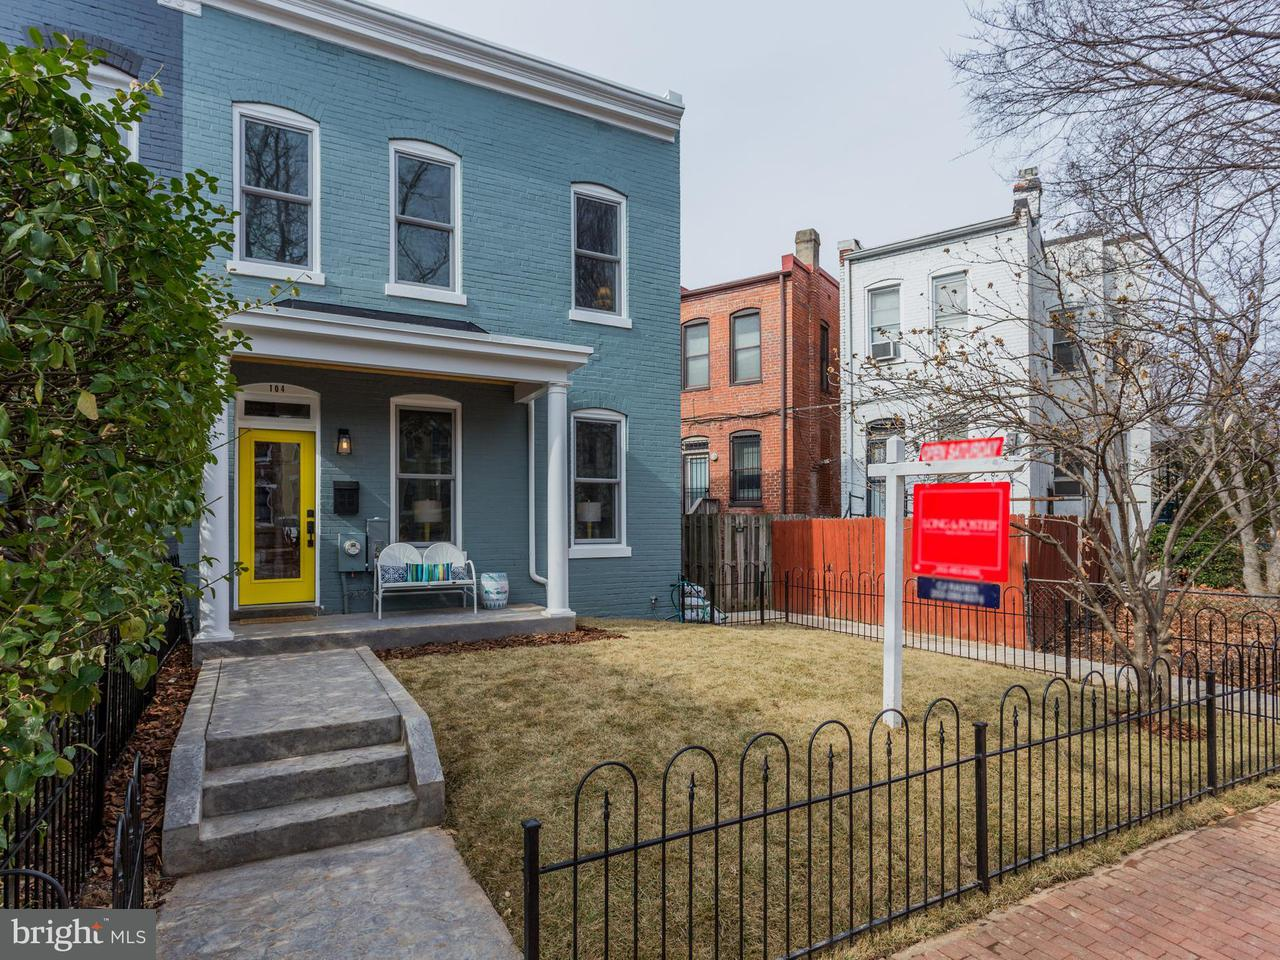 Townhouse for Sale at 104 14th St Ne 104 14th St Ne Washington, District Of Columbia 20002 United States